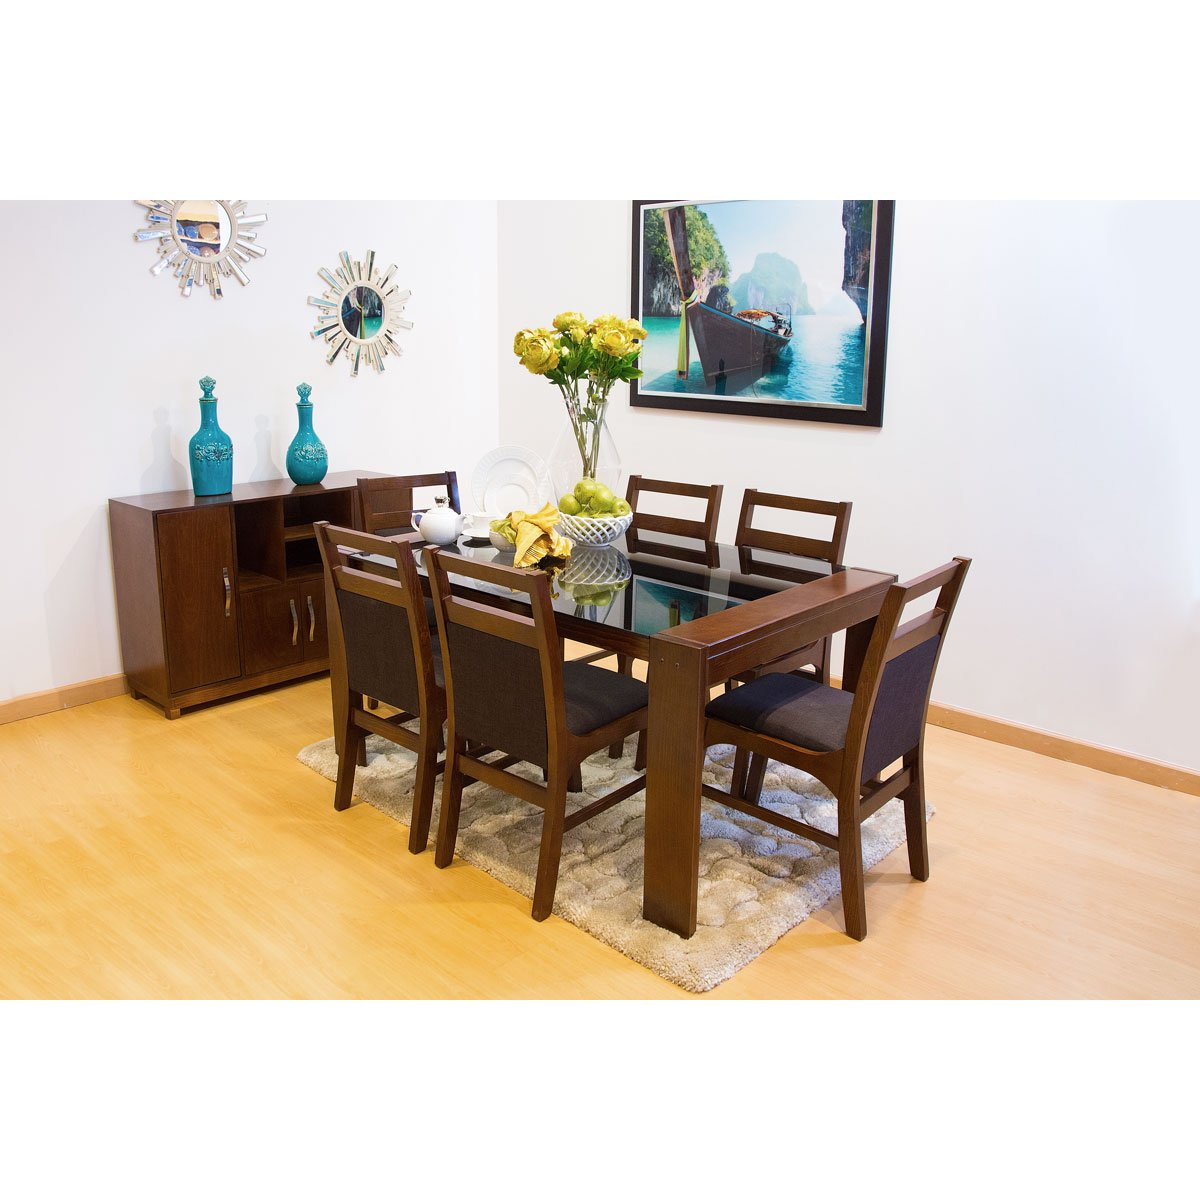 comedor kansas mesa 6 sillas el ngel sears com mx me On comedor kansas